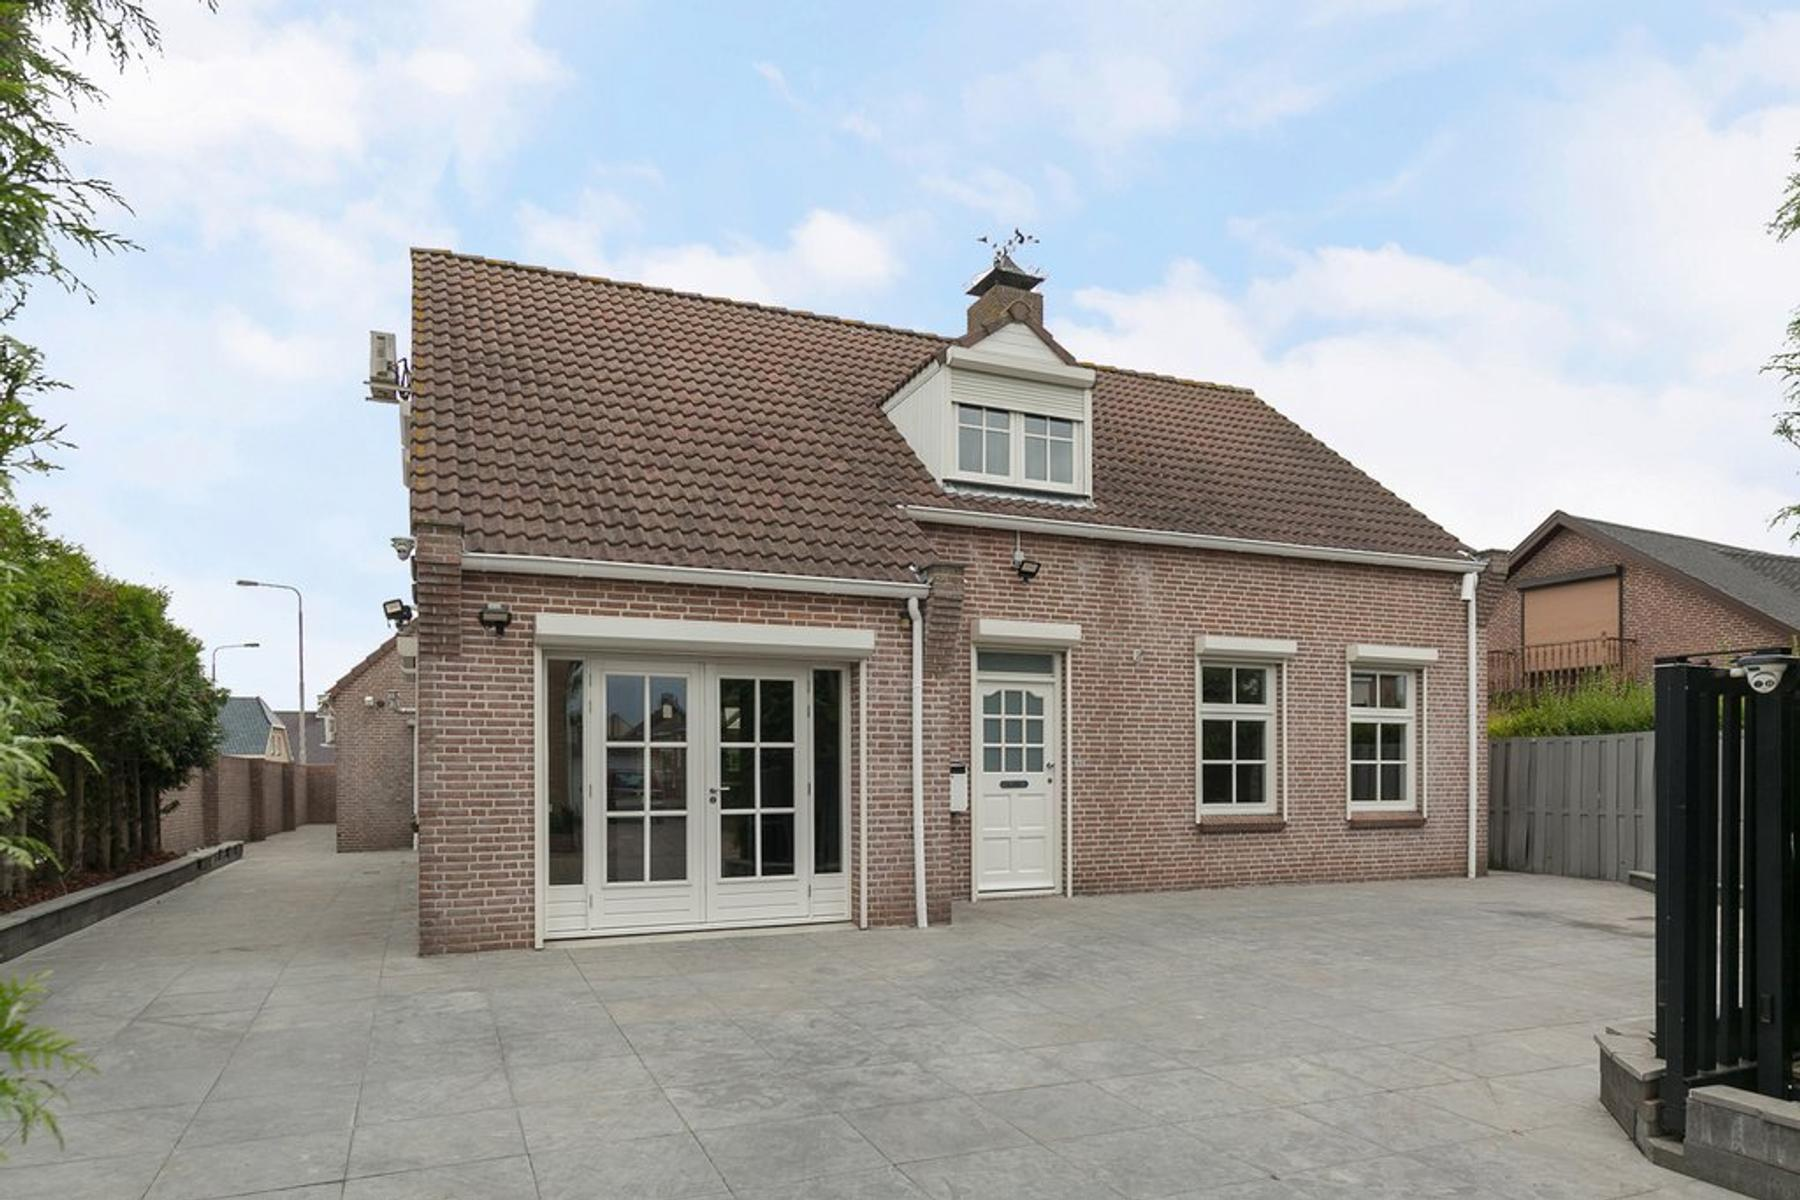 Rugstraat 64 in St. Willebrord 4711 CT